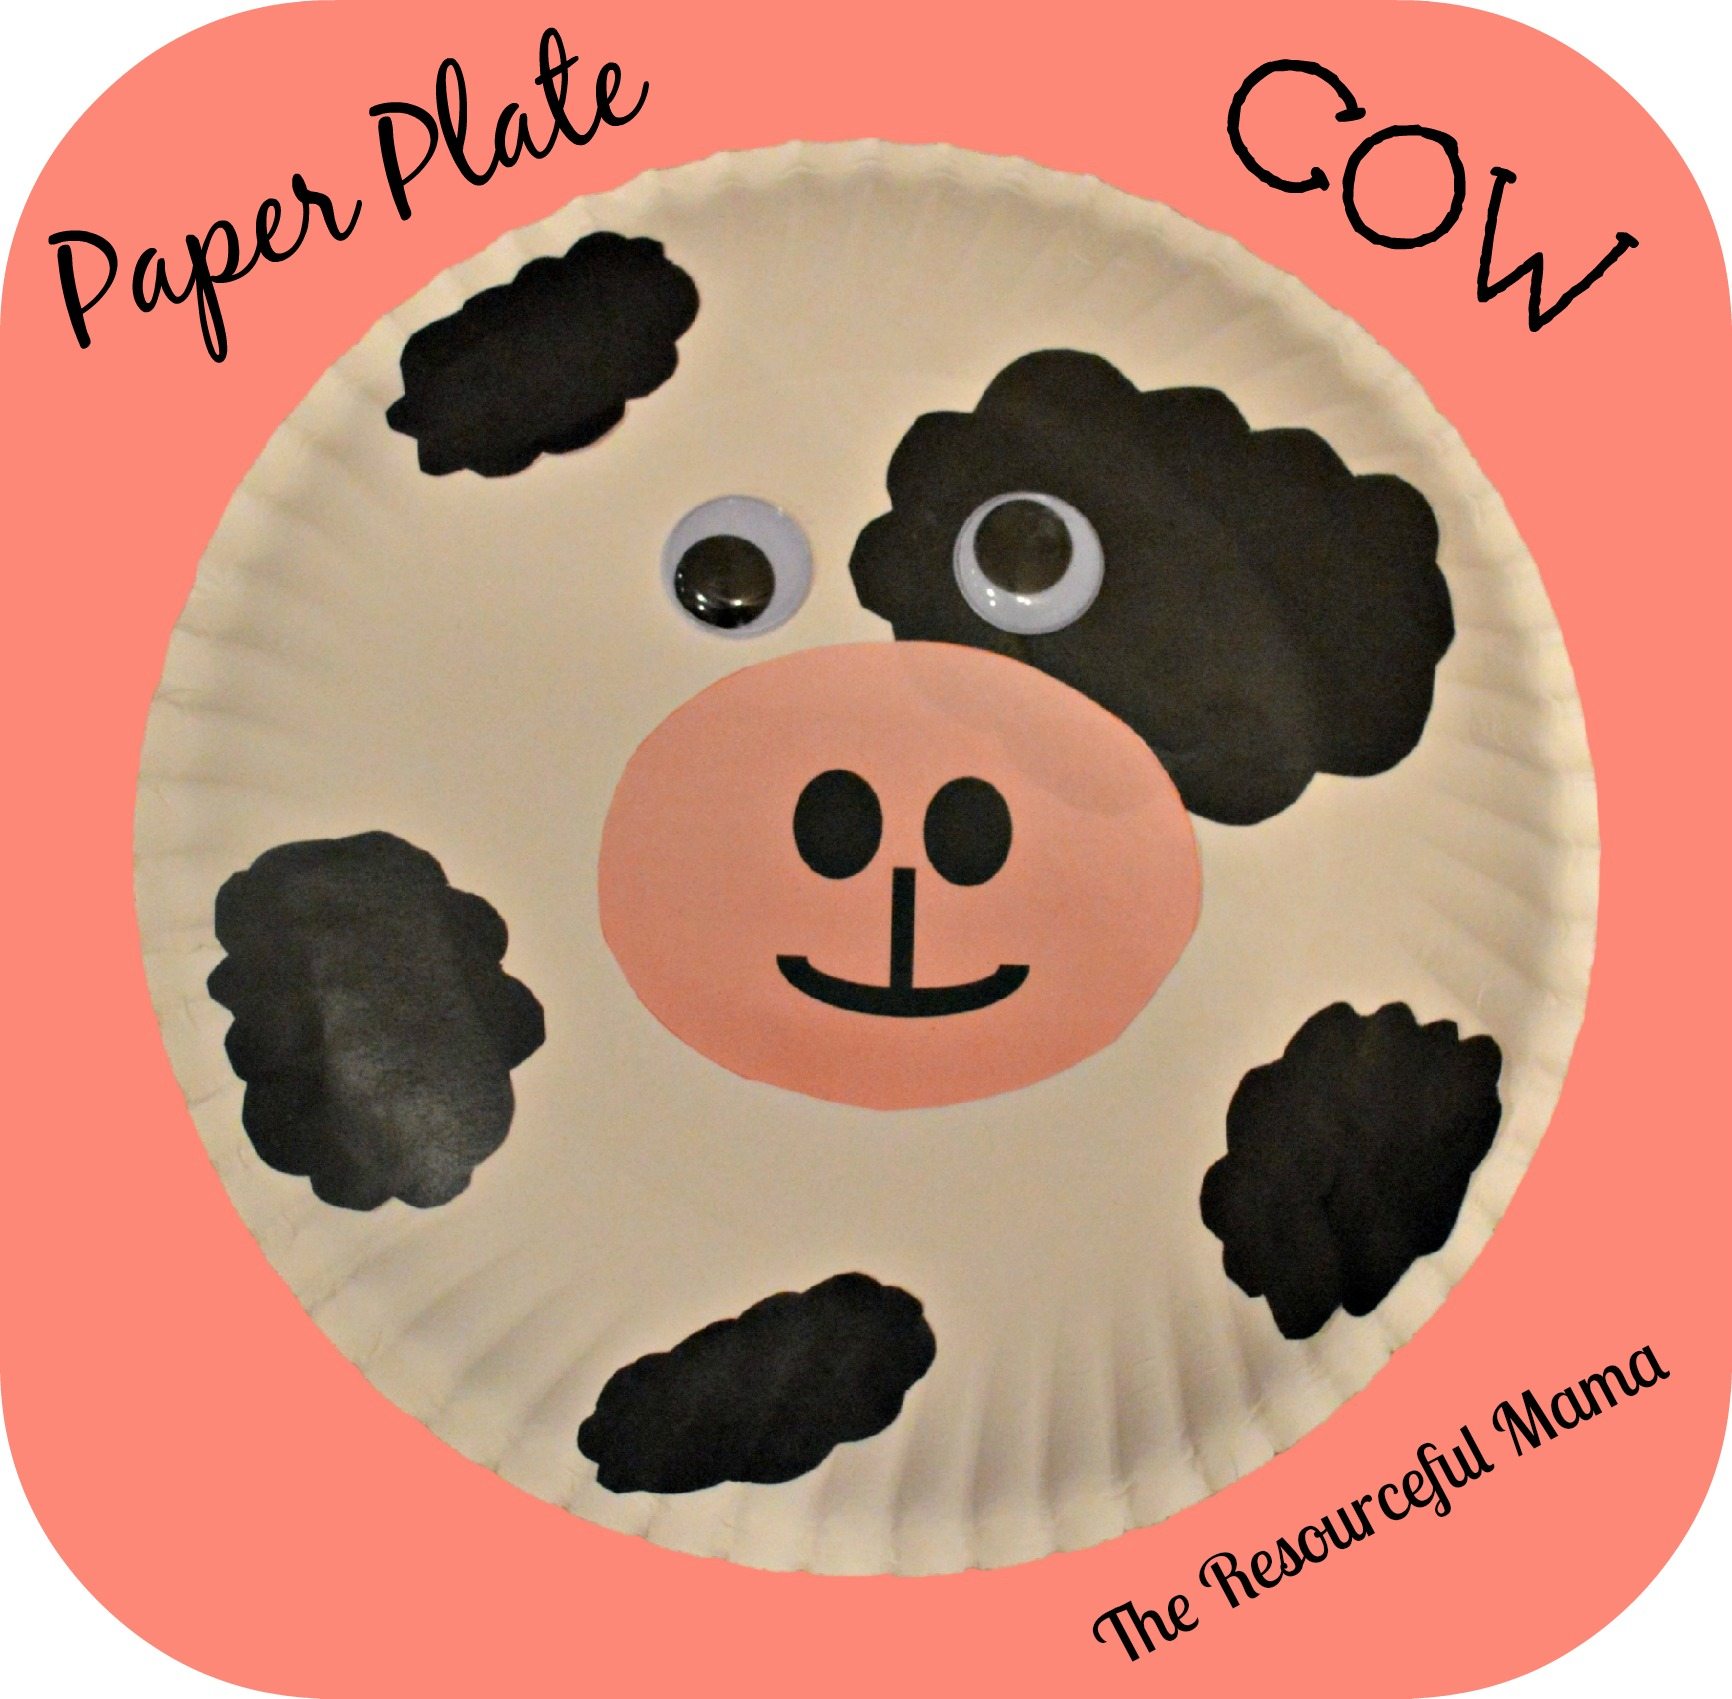 I thought this paper plate cow would be a fun craft to do with this book. It is really easy to make with items you likely already have on hand.  sc 1 st  The Resourceful Mama & Book + Craft Paper Plate Cow - The Resourceful Mama